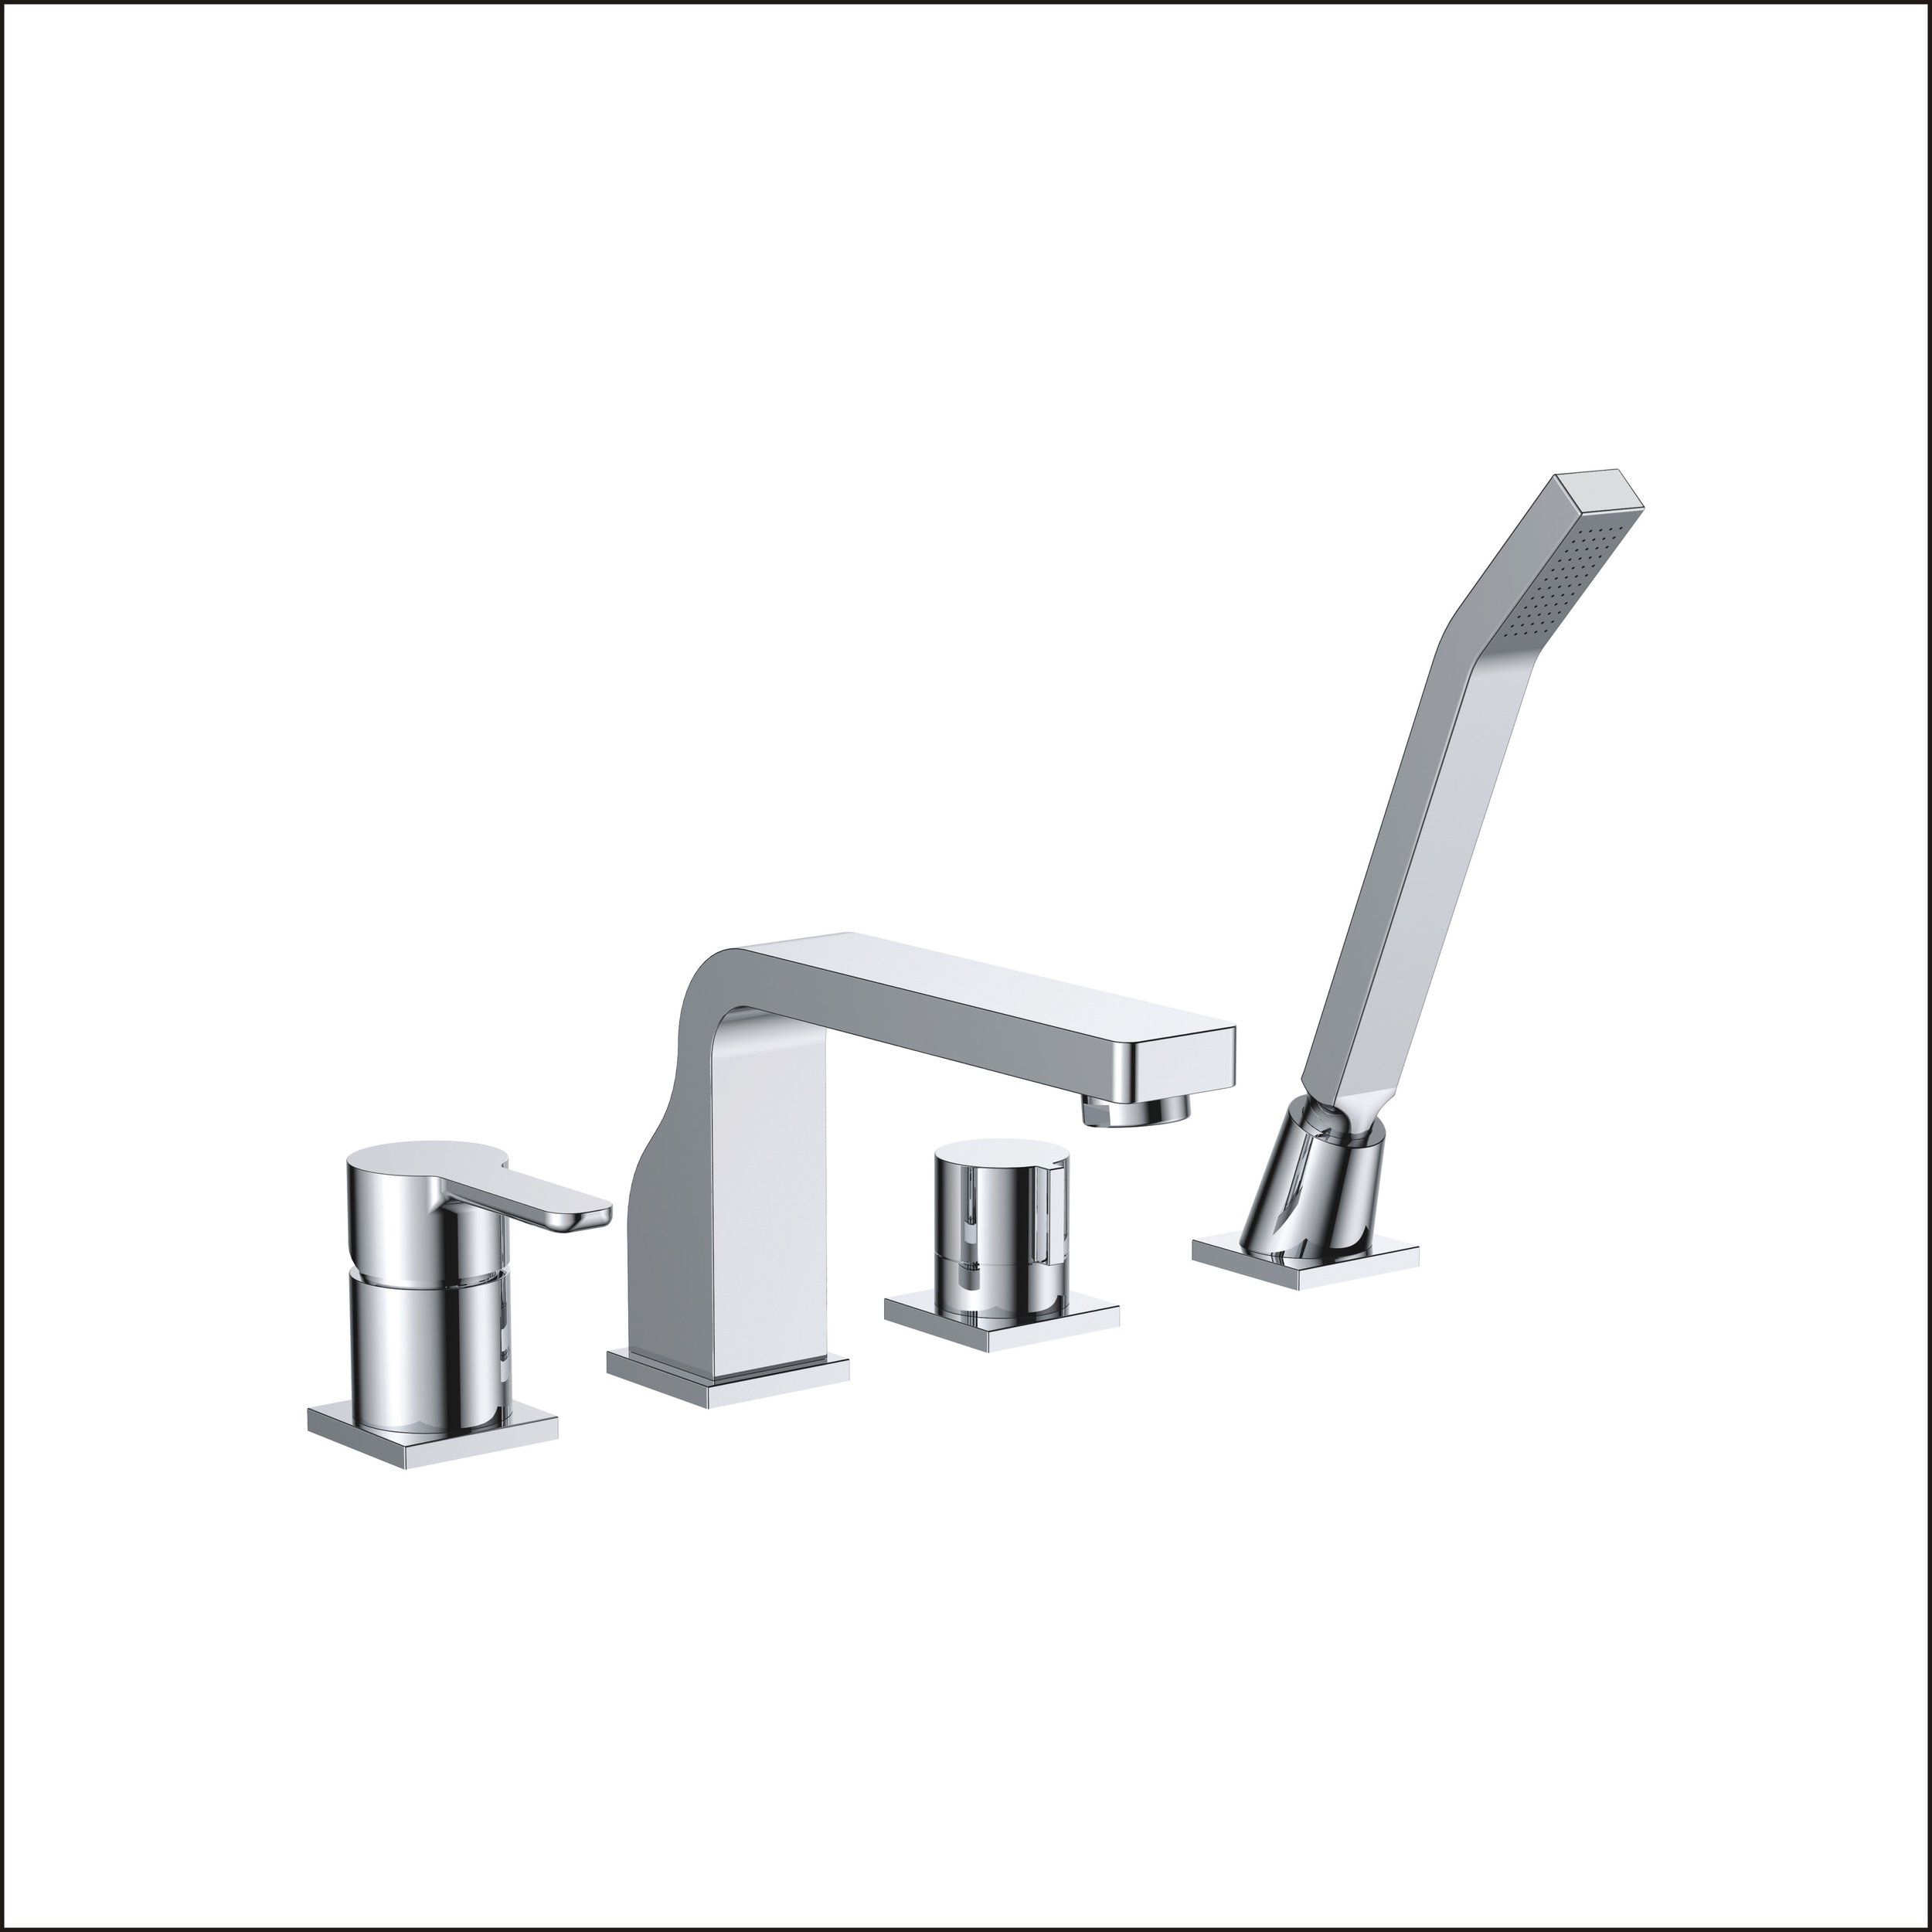 718-109: Widespread faucet with spray